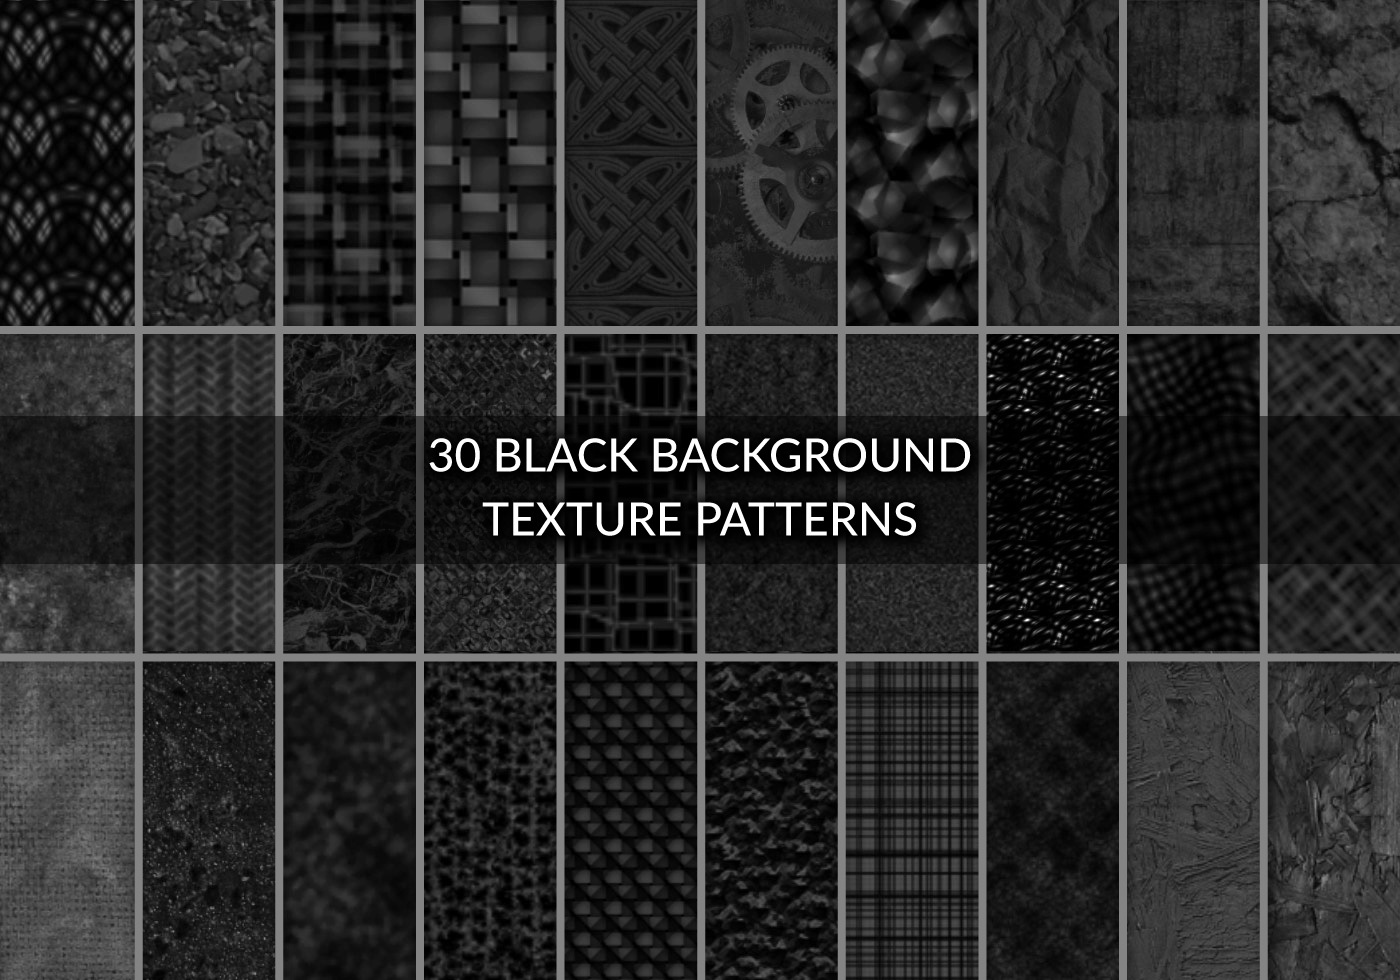 Textures & Patterns | Web Design Library